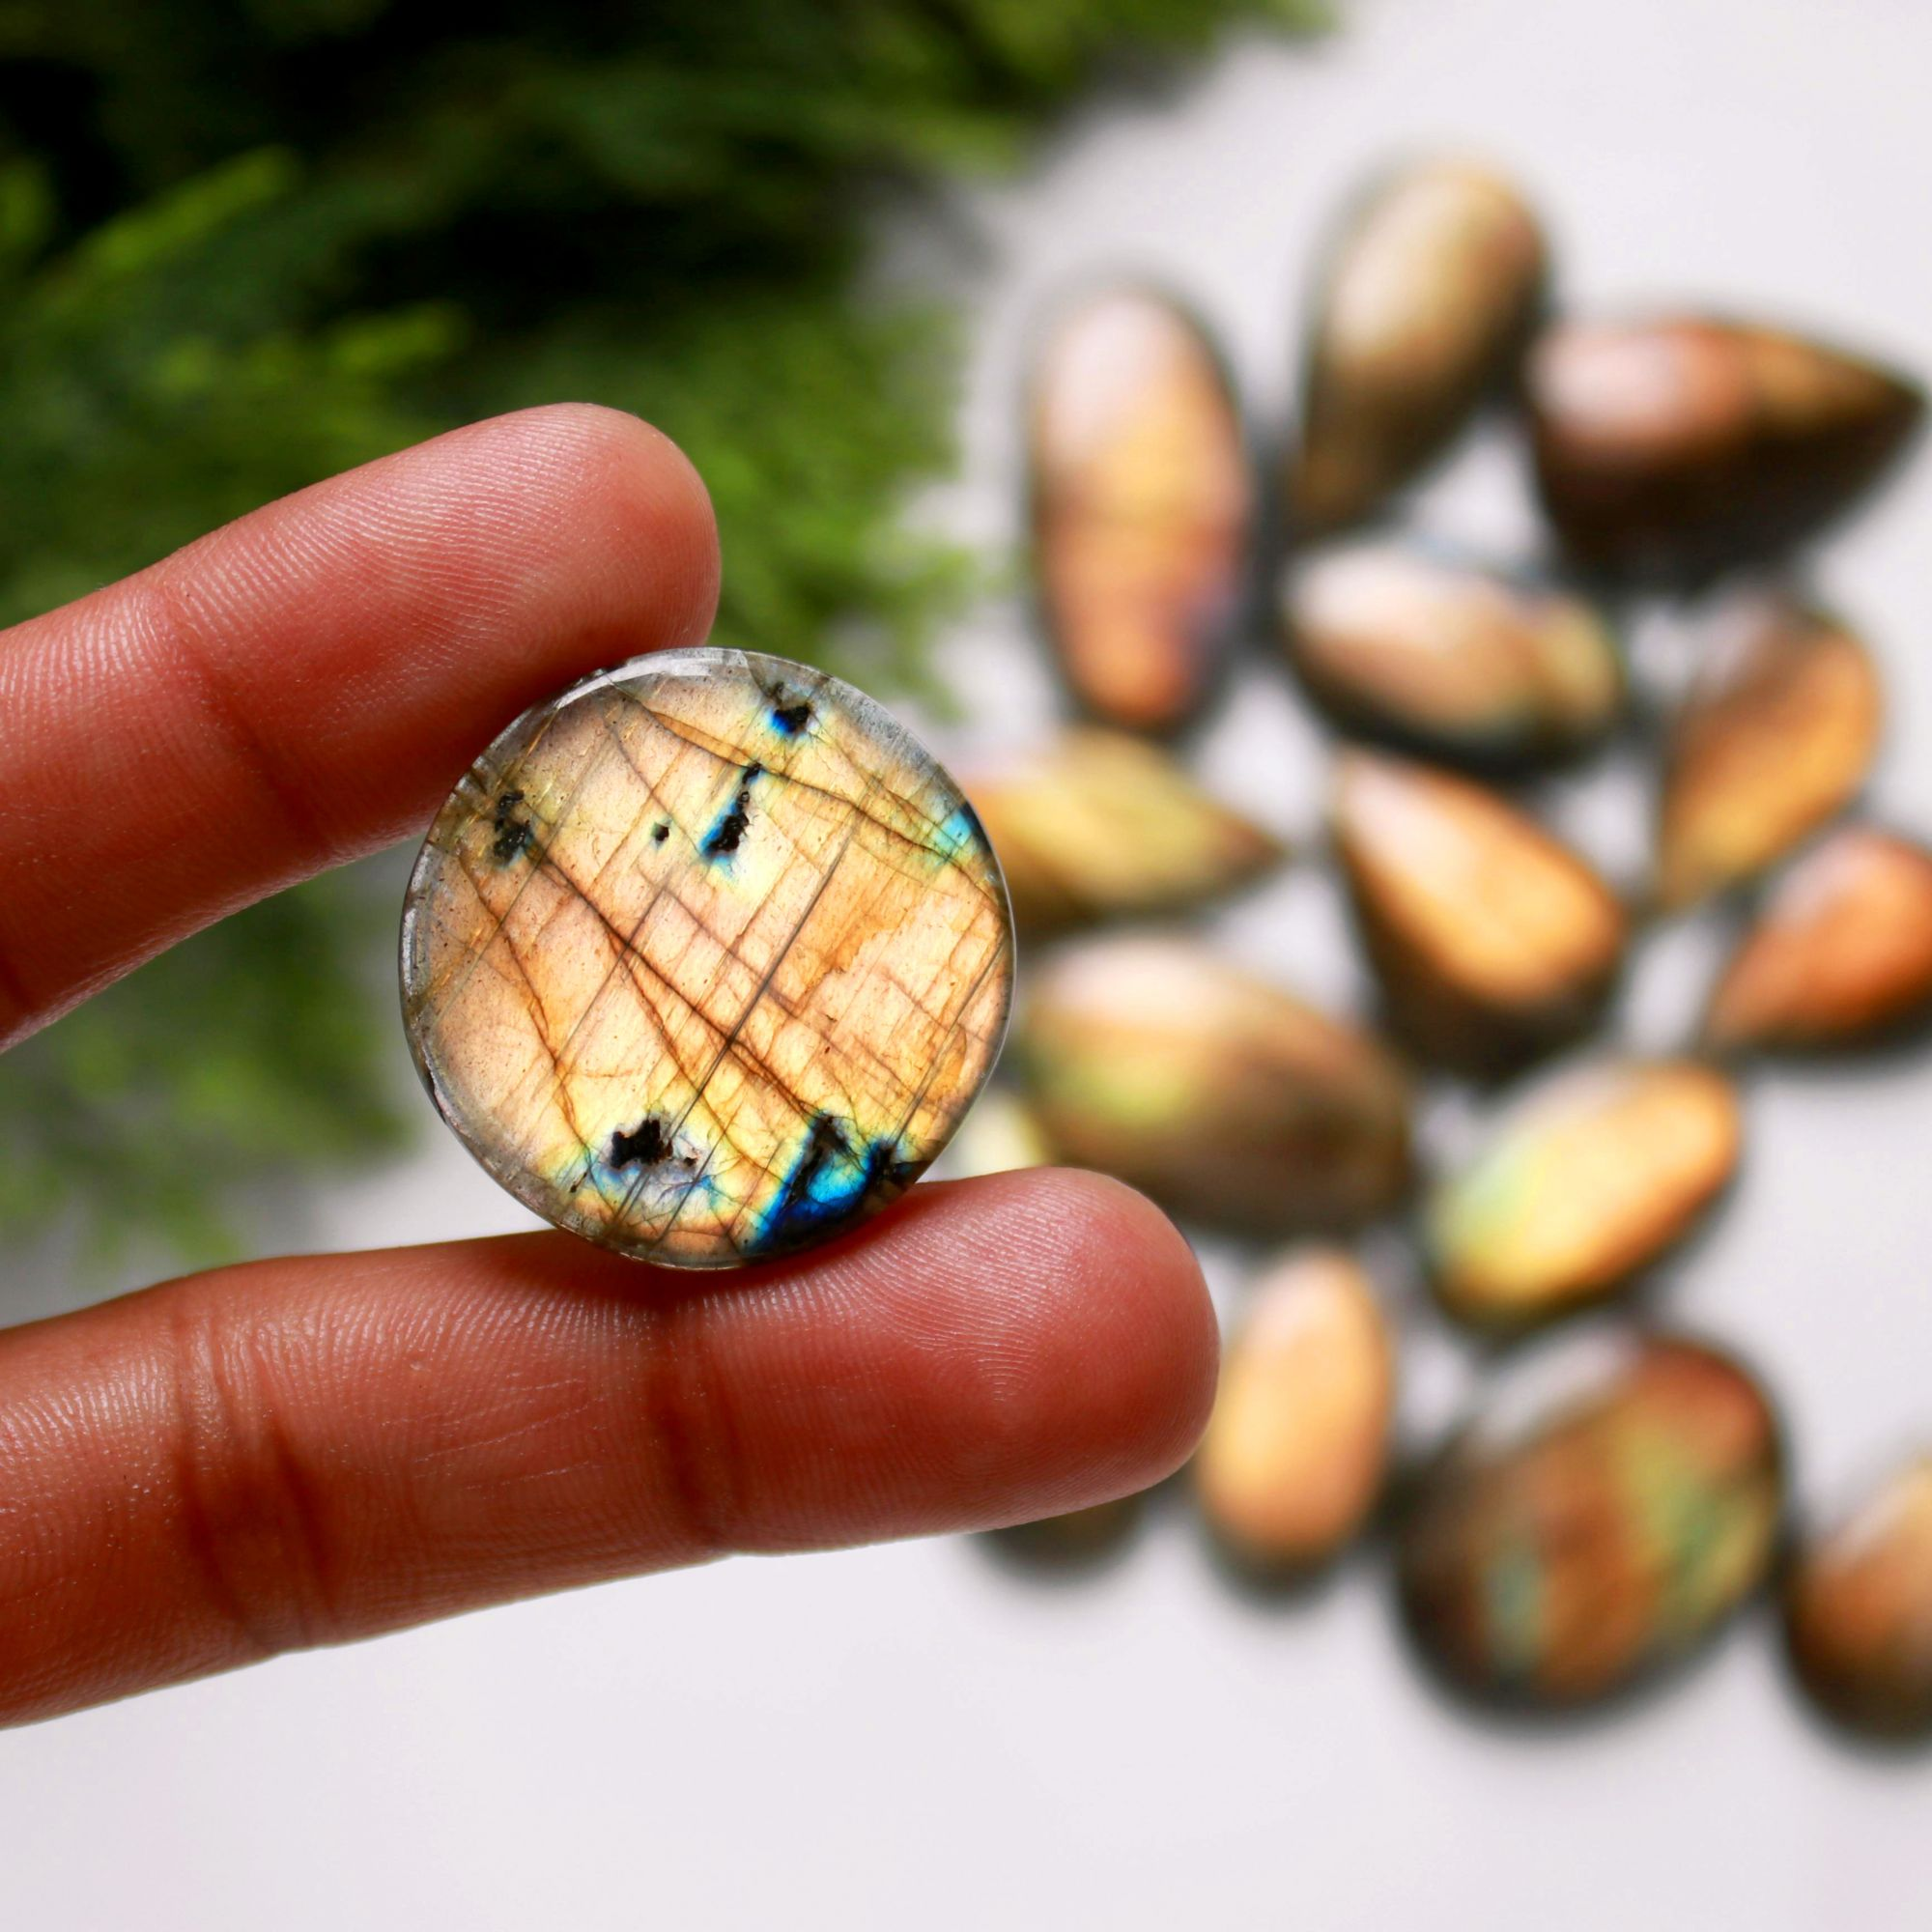 17 Pcs. 519Cts. Natural Multi Fire Labradorite Mix Cabochon Loose Gemstone Wholesale Lot Size 41X22 25x18 mm.